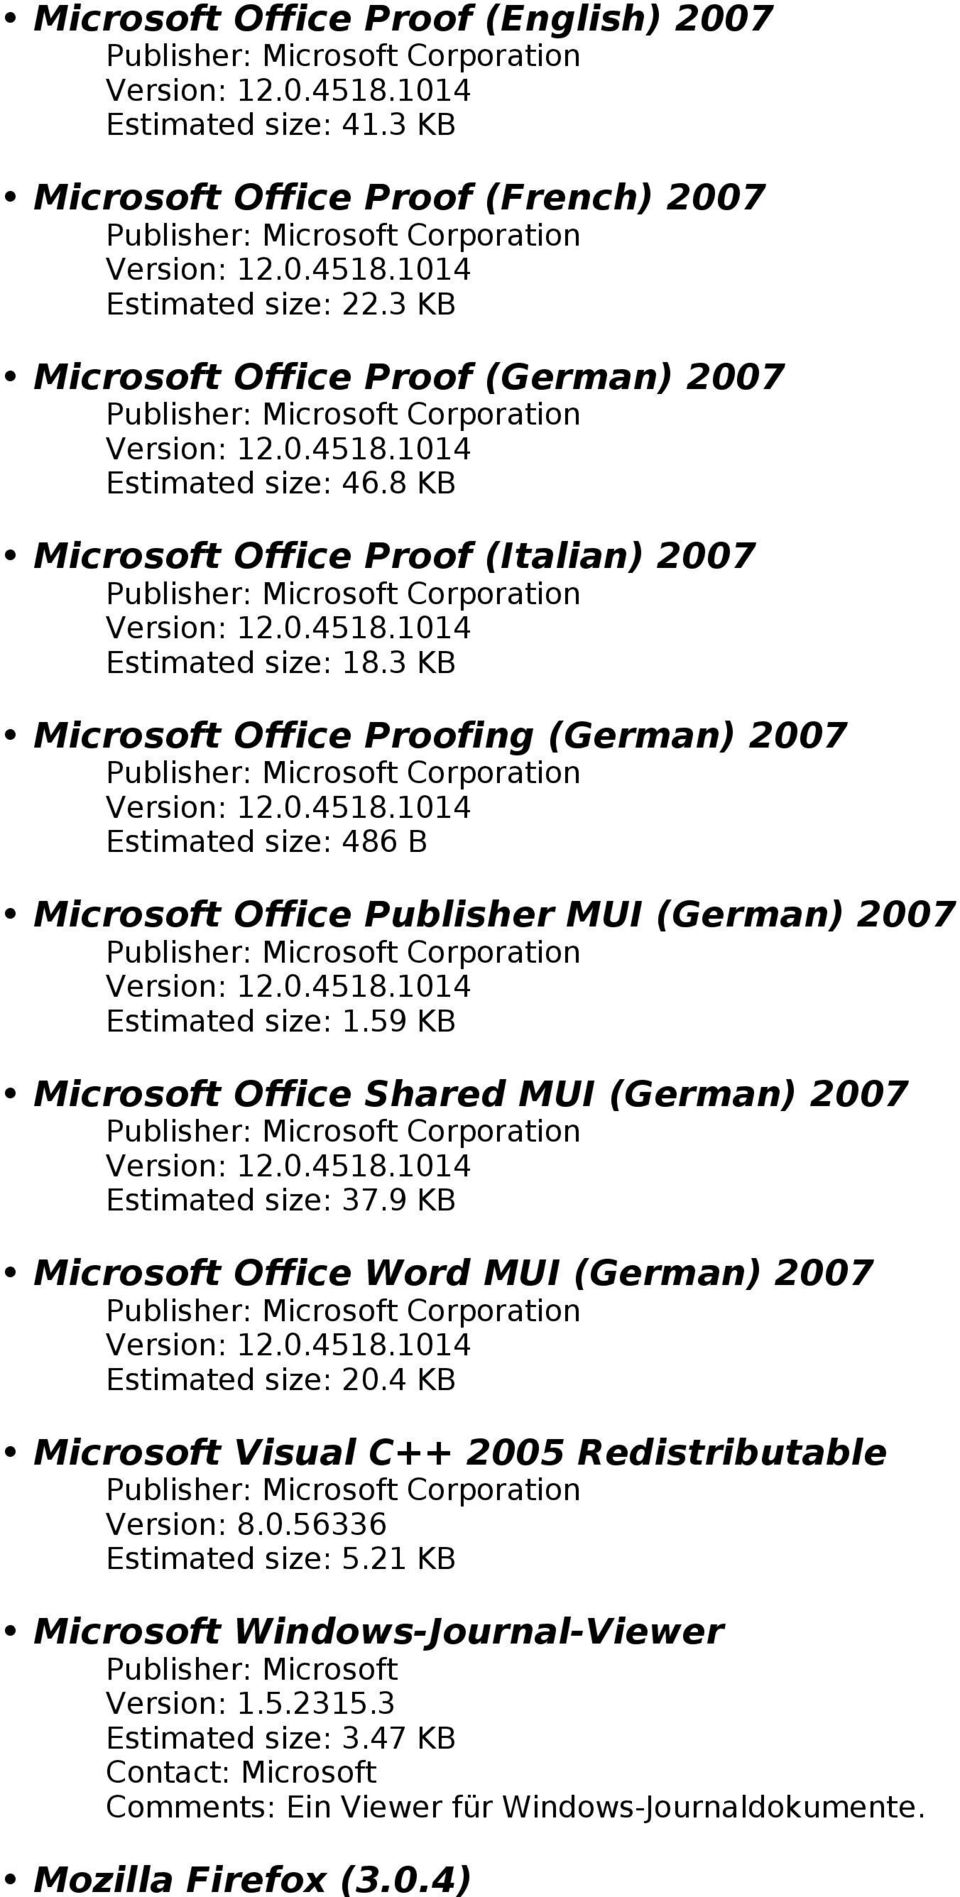 59 KB Microsoft Office Shared MUI (German) 2007 Estimated size: 37.9 KB Microsoft Office Word MUI (German) 2007 Estimated size: 20.4 KB Microsoft Visual C++ 2005 Redistributable Version: 8.0.56336 Estimated size: 5.